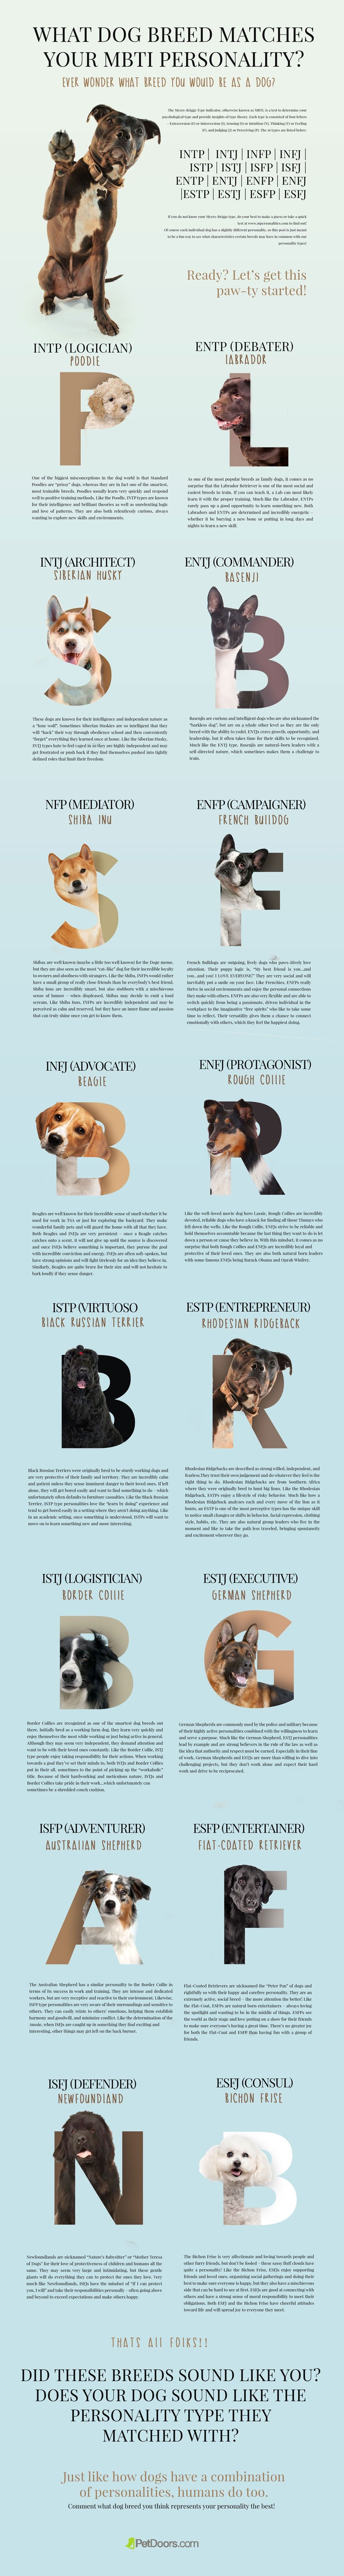 What Dog Breed Matches Your Personality? (Infographic)